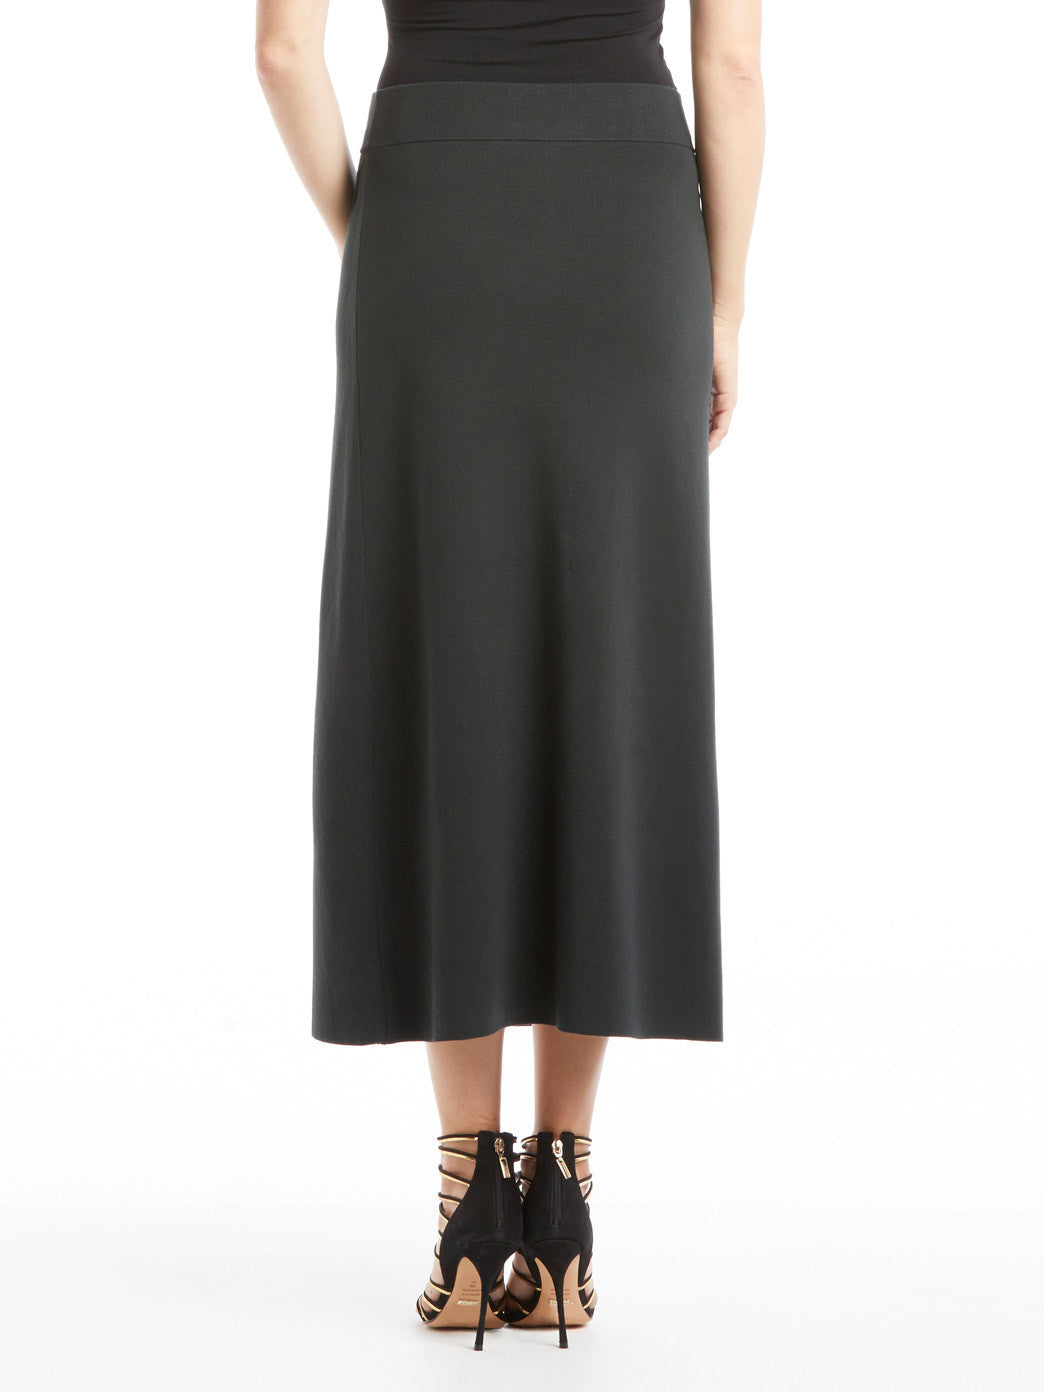 A.L.C. Muller Skirt - Deep Green | TILDEN